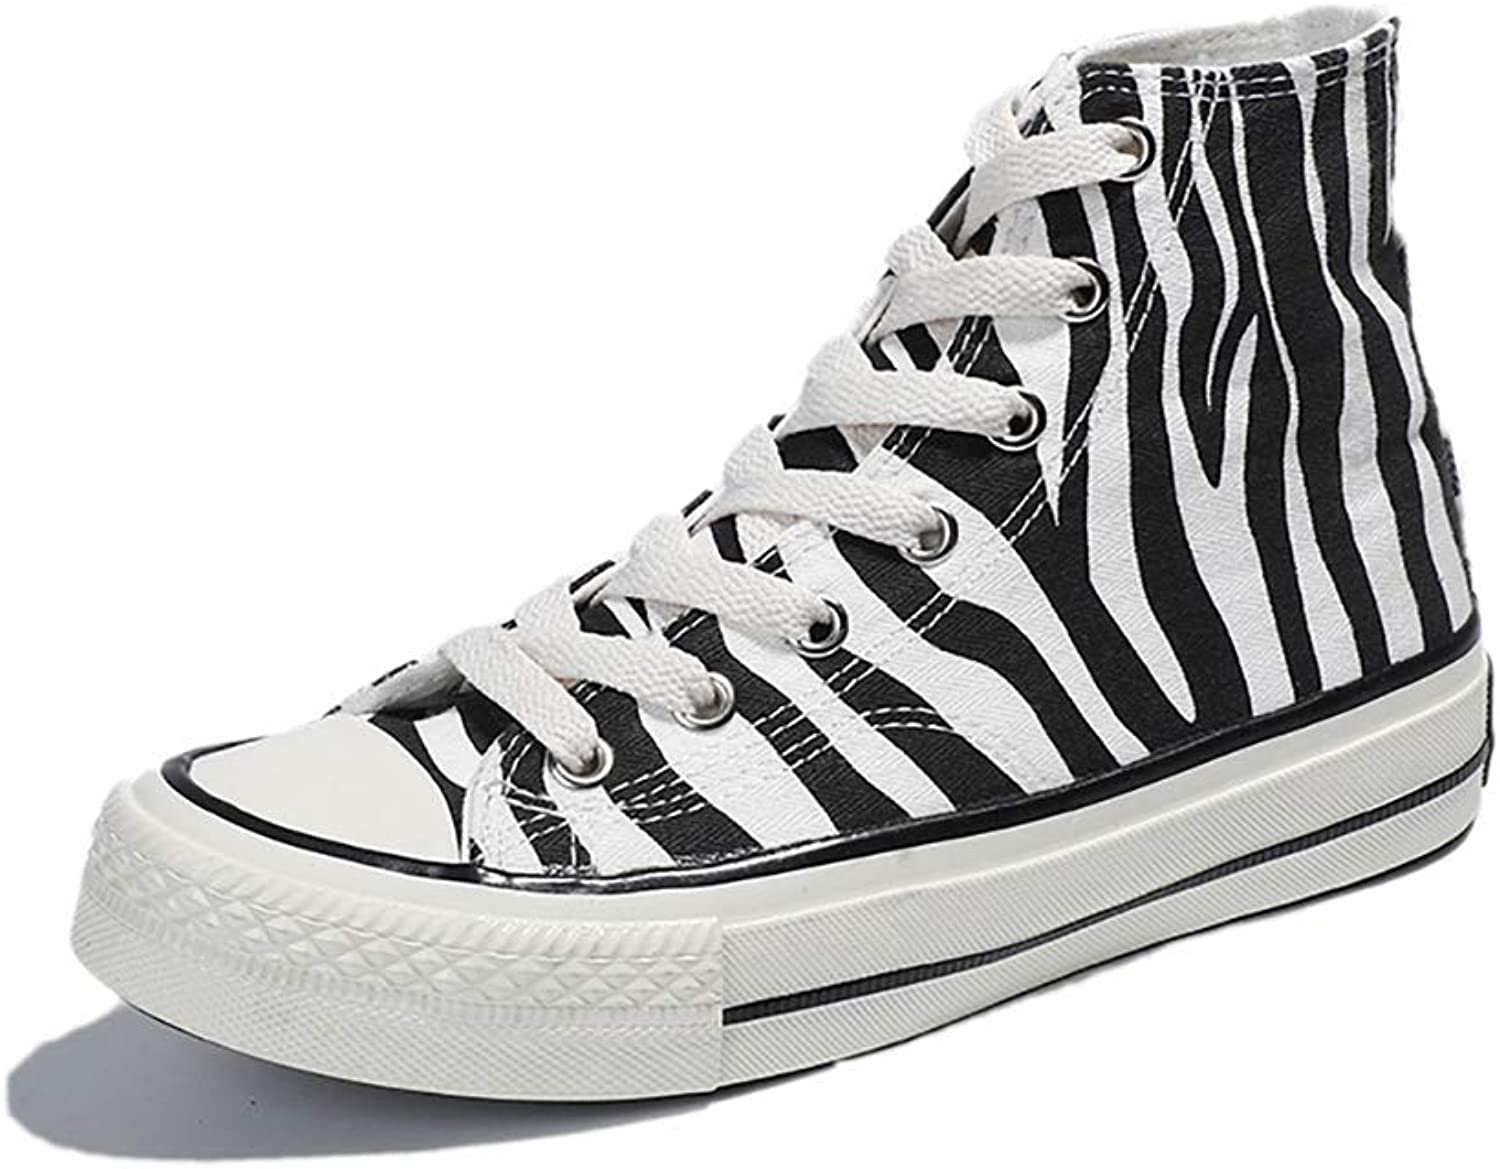 Women's Canvas High Top Sneaker Casual Lace up Fashion Comfortable for Walking,White,35